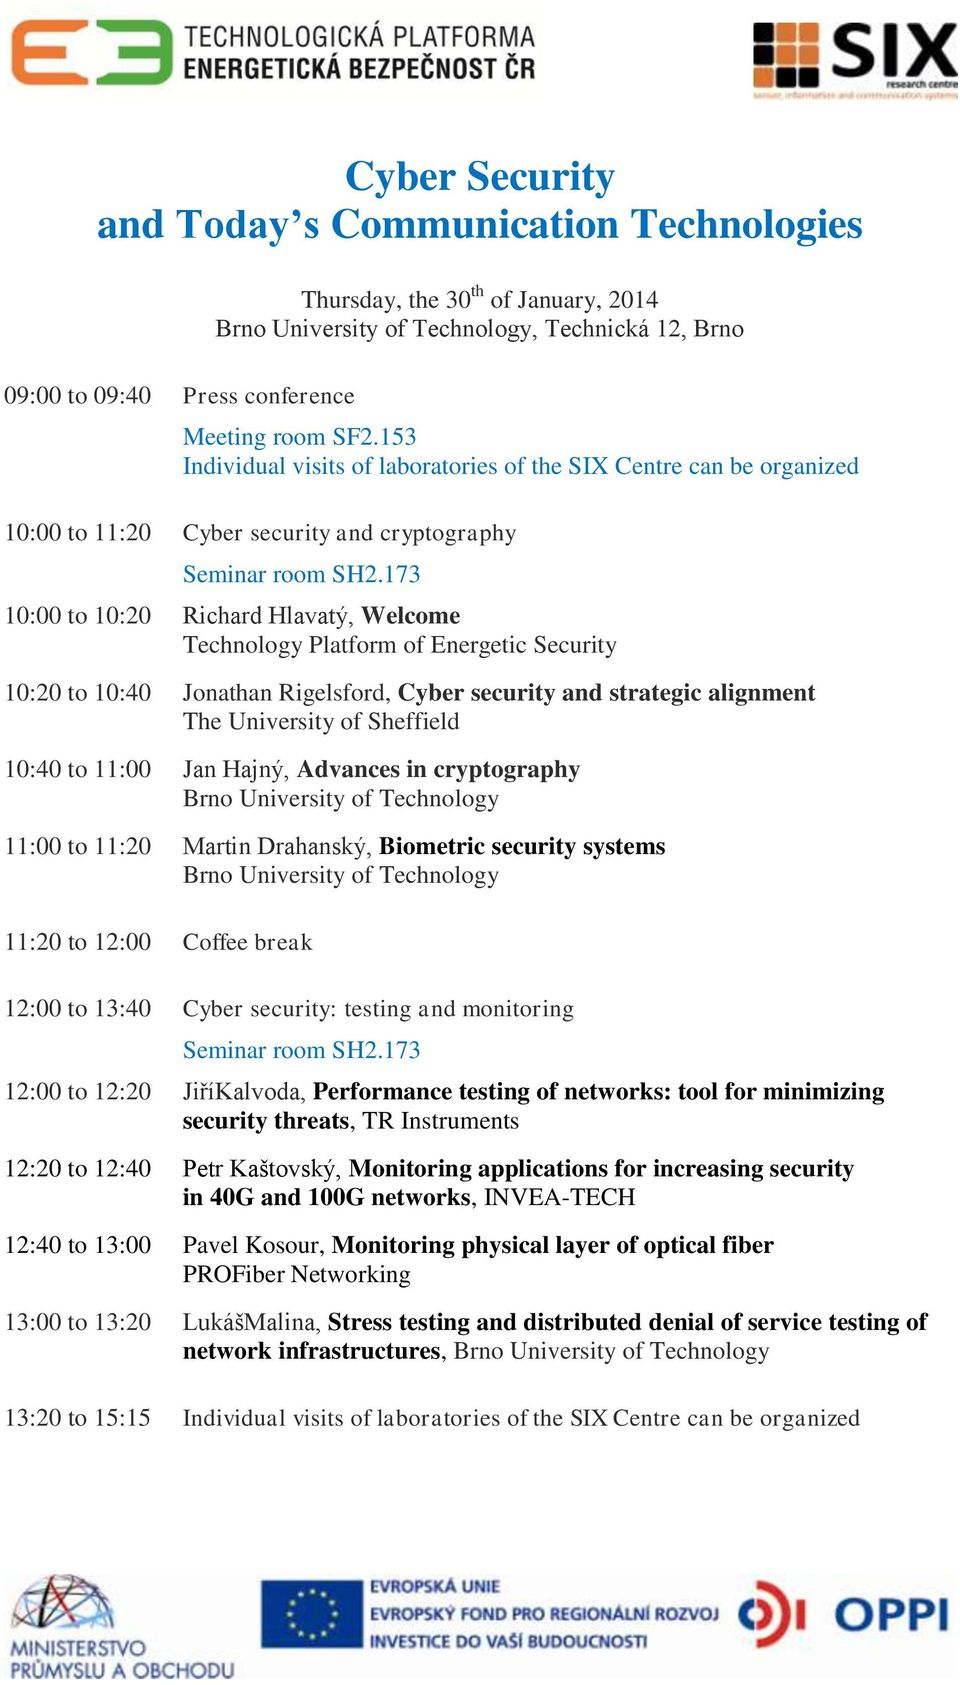 173 10:00 to 10:20 Richard Hlavatý, Welcome Technology Platform of Energetic Security 10:20 to 10:40 Jonathan Rigelsford, Cyber security and strategic alignment The University of Sheffield 10:40 to